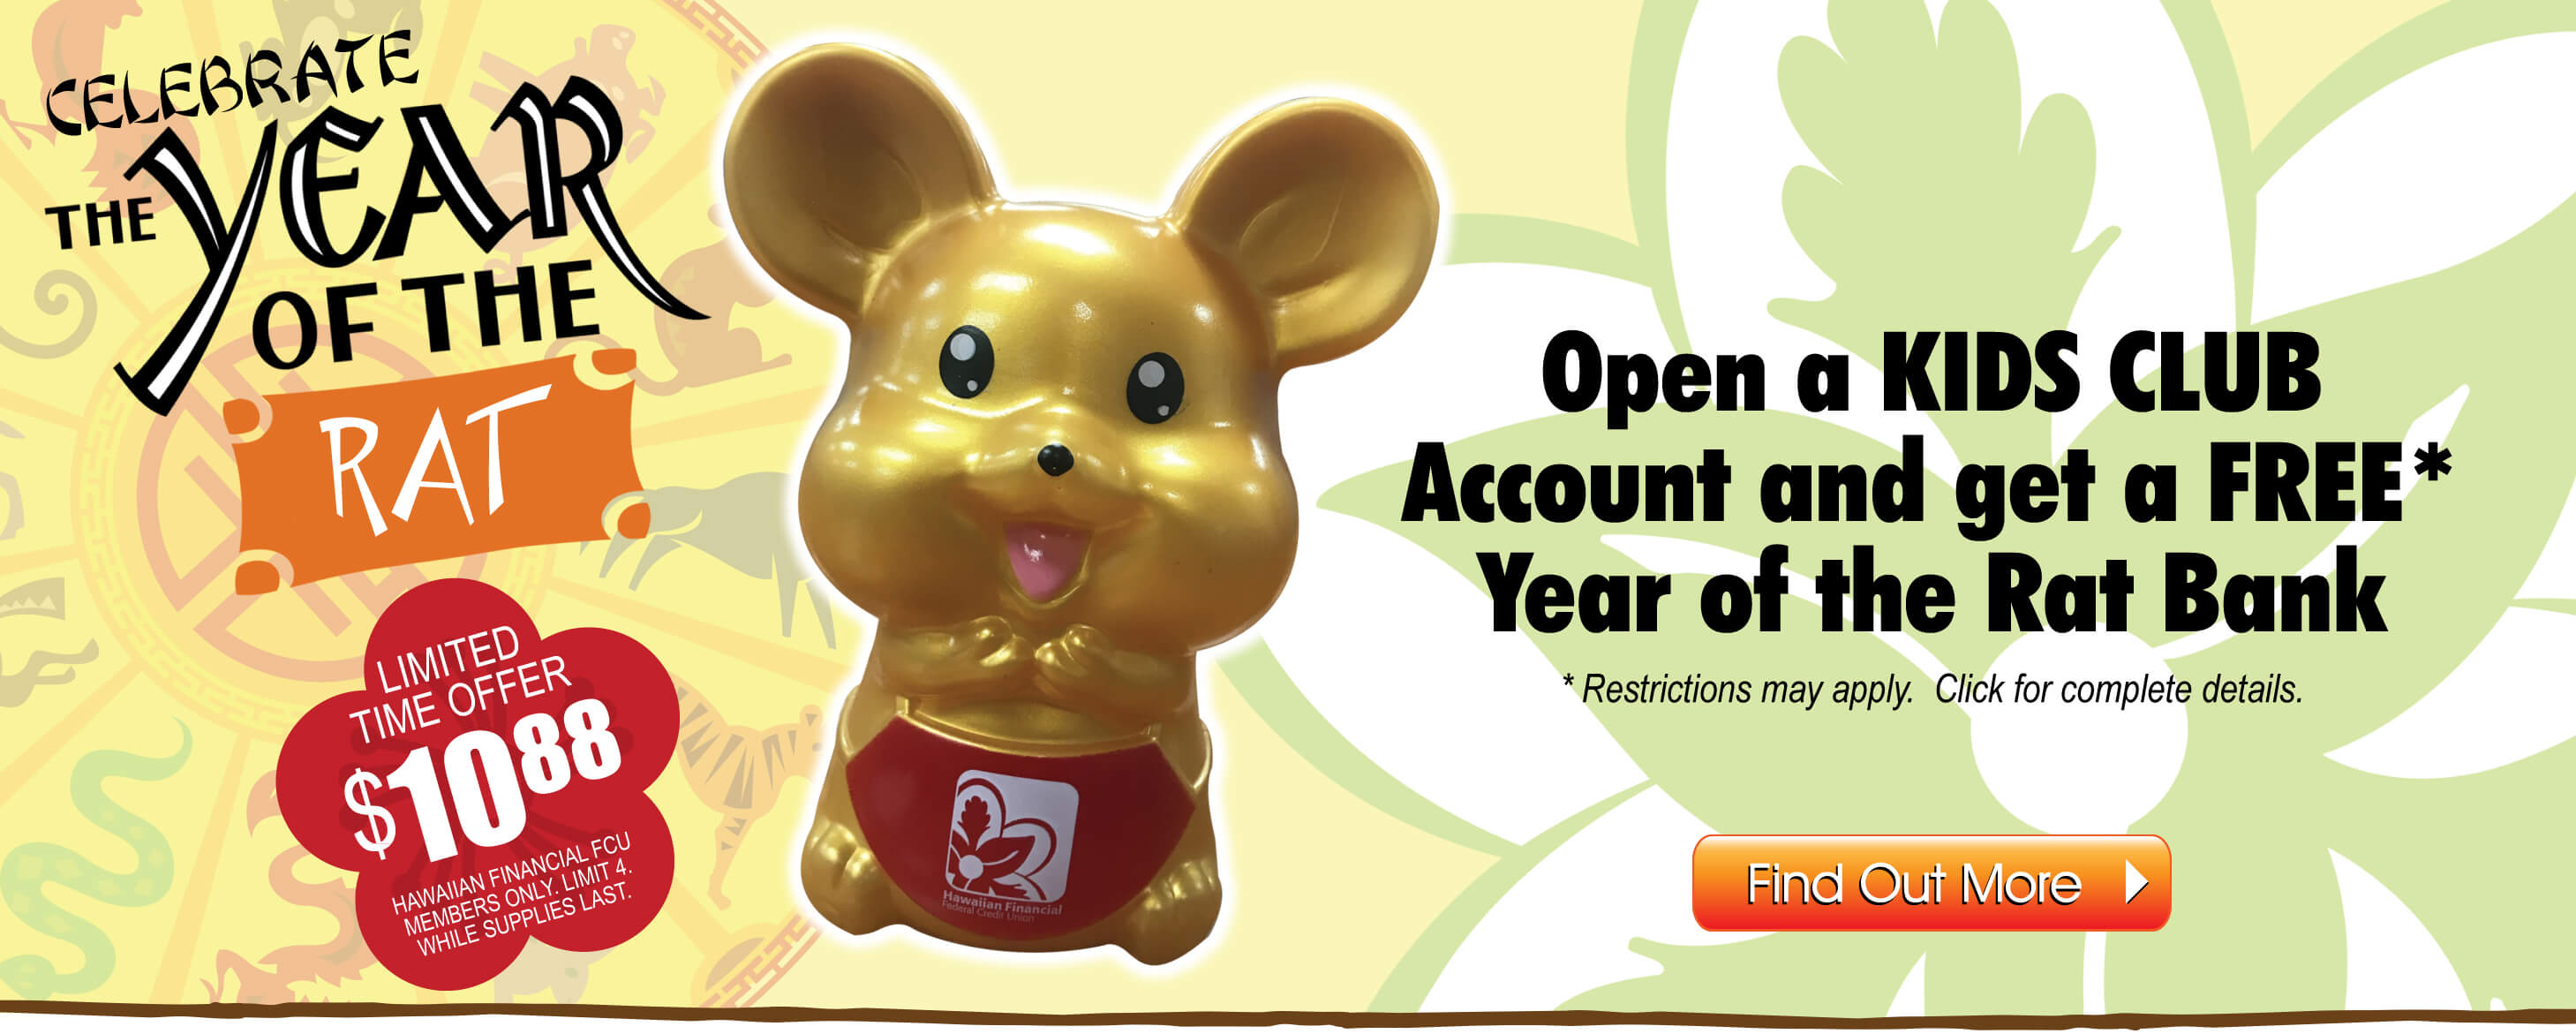 Celebrate the Year of the Rat!  Get a Free* Year of the Rat bank when you open a Kids Club account with at least $100!